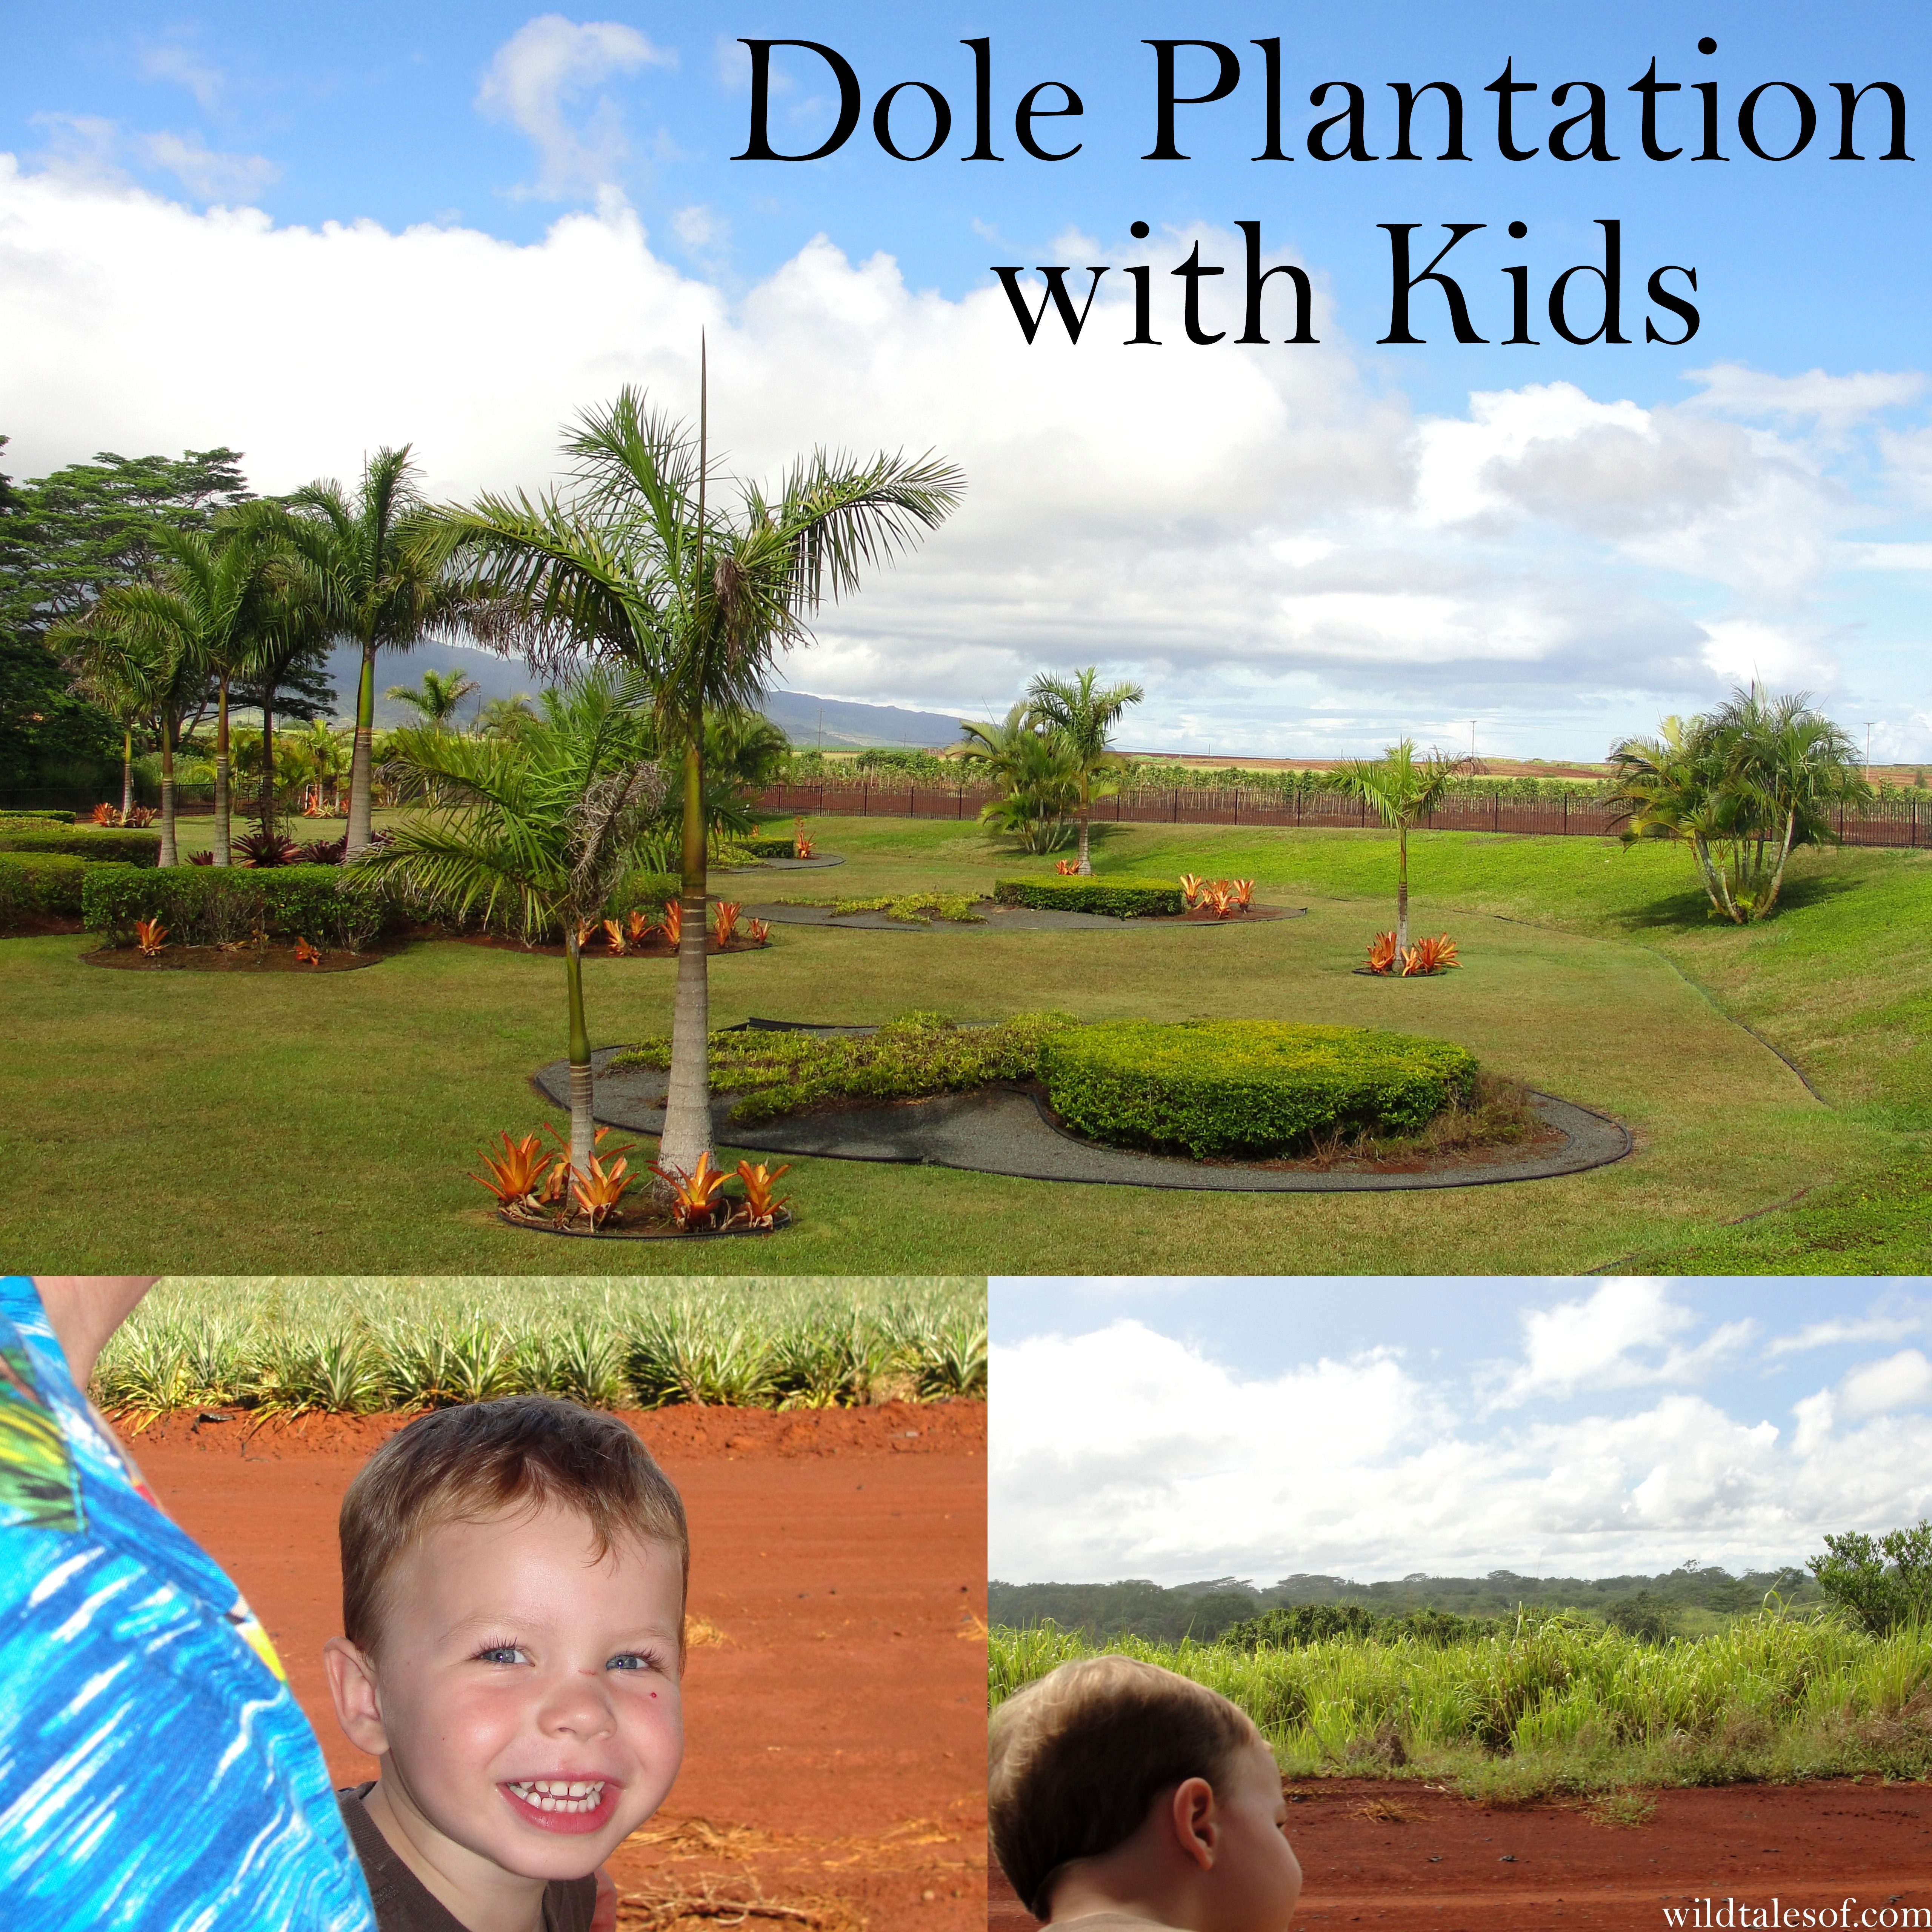 Feeding The Pineapple Obsession Oahu S Dole Plantation With Kids Wildtalesof Com